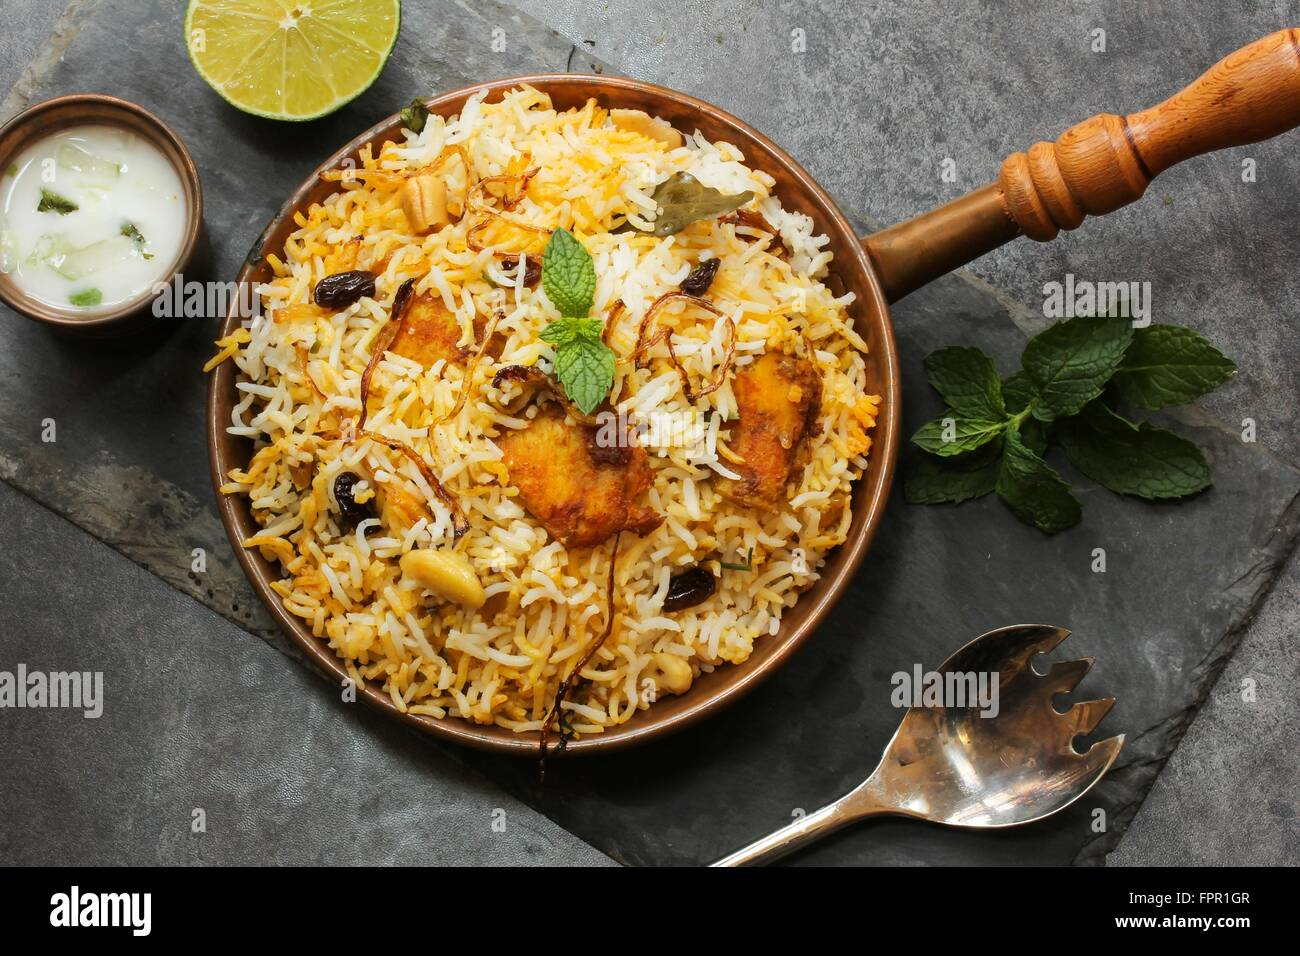 Fish biryani indian spicy food stock photo 100080423 alamy fish biryani indian spicy food forumfinder Image collections